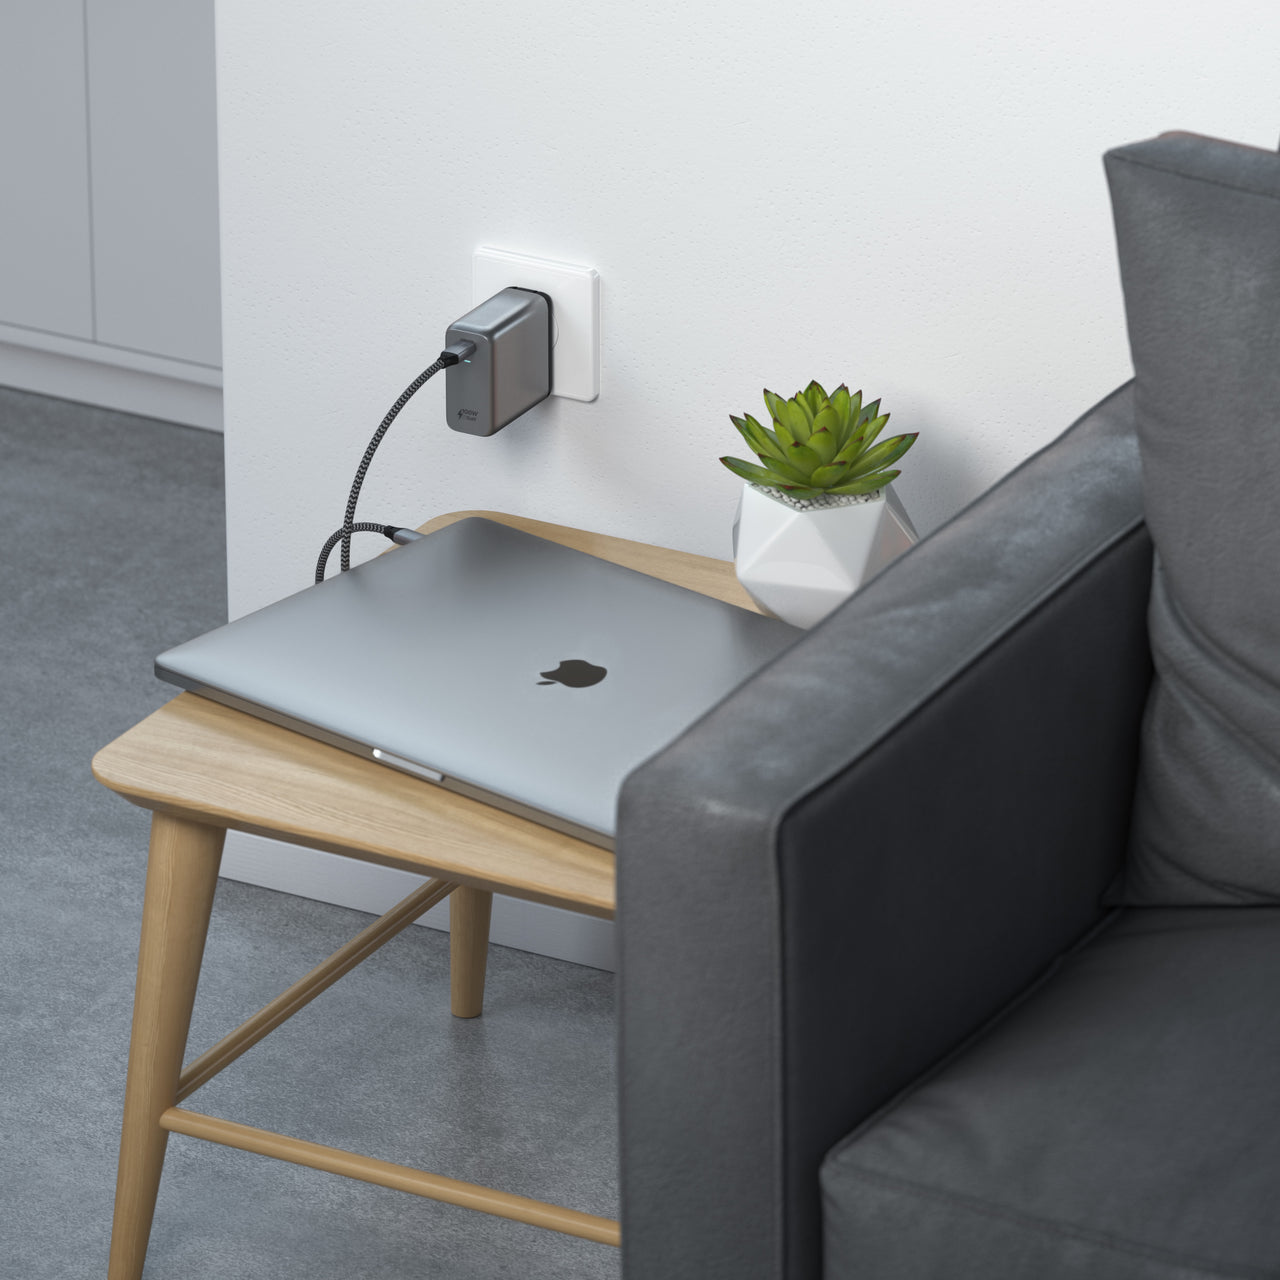 100W USB-C PD Wall Charger